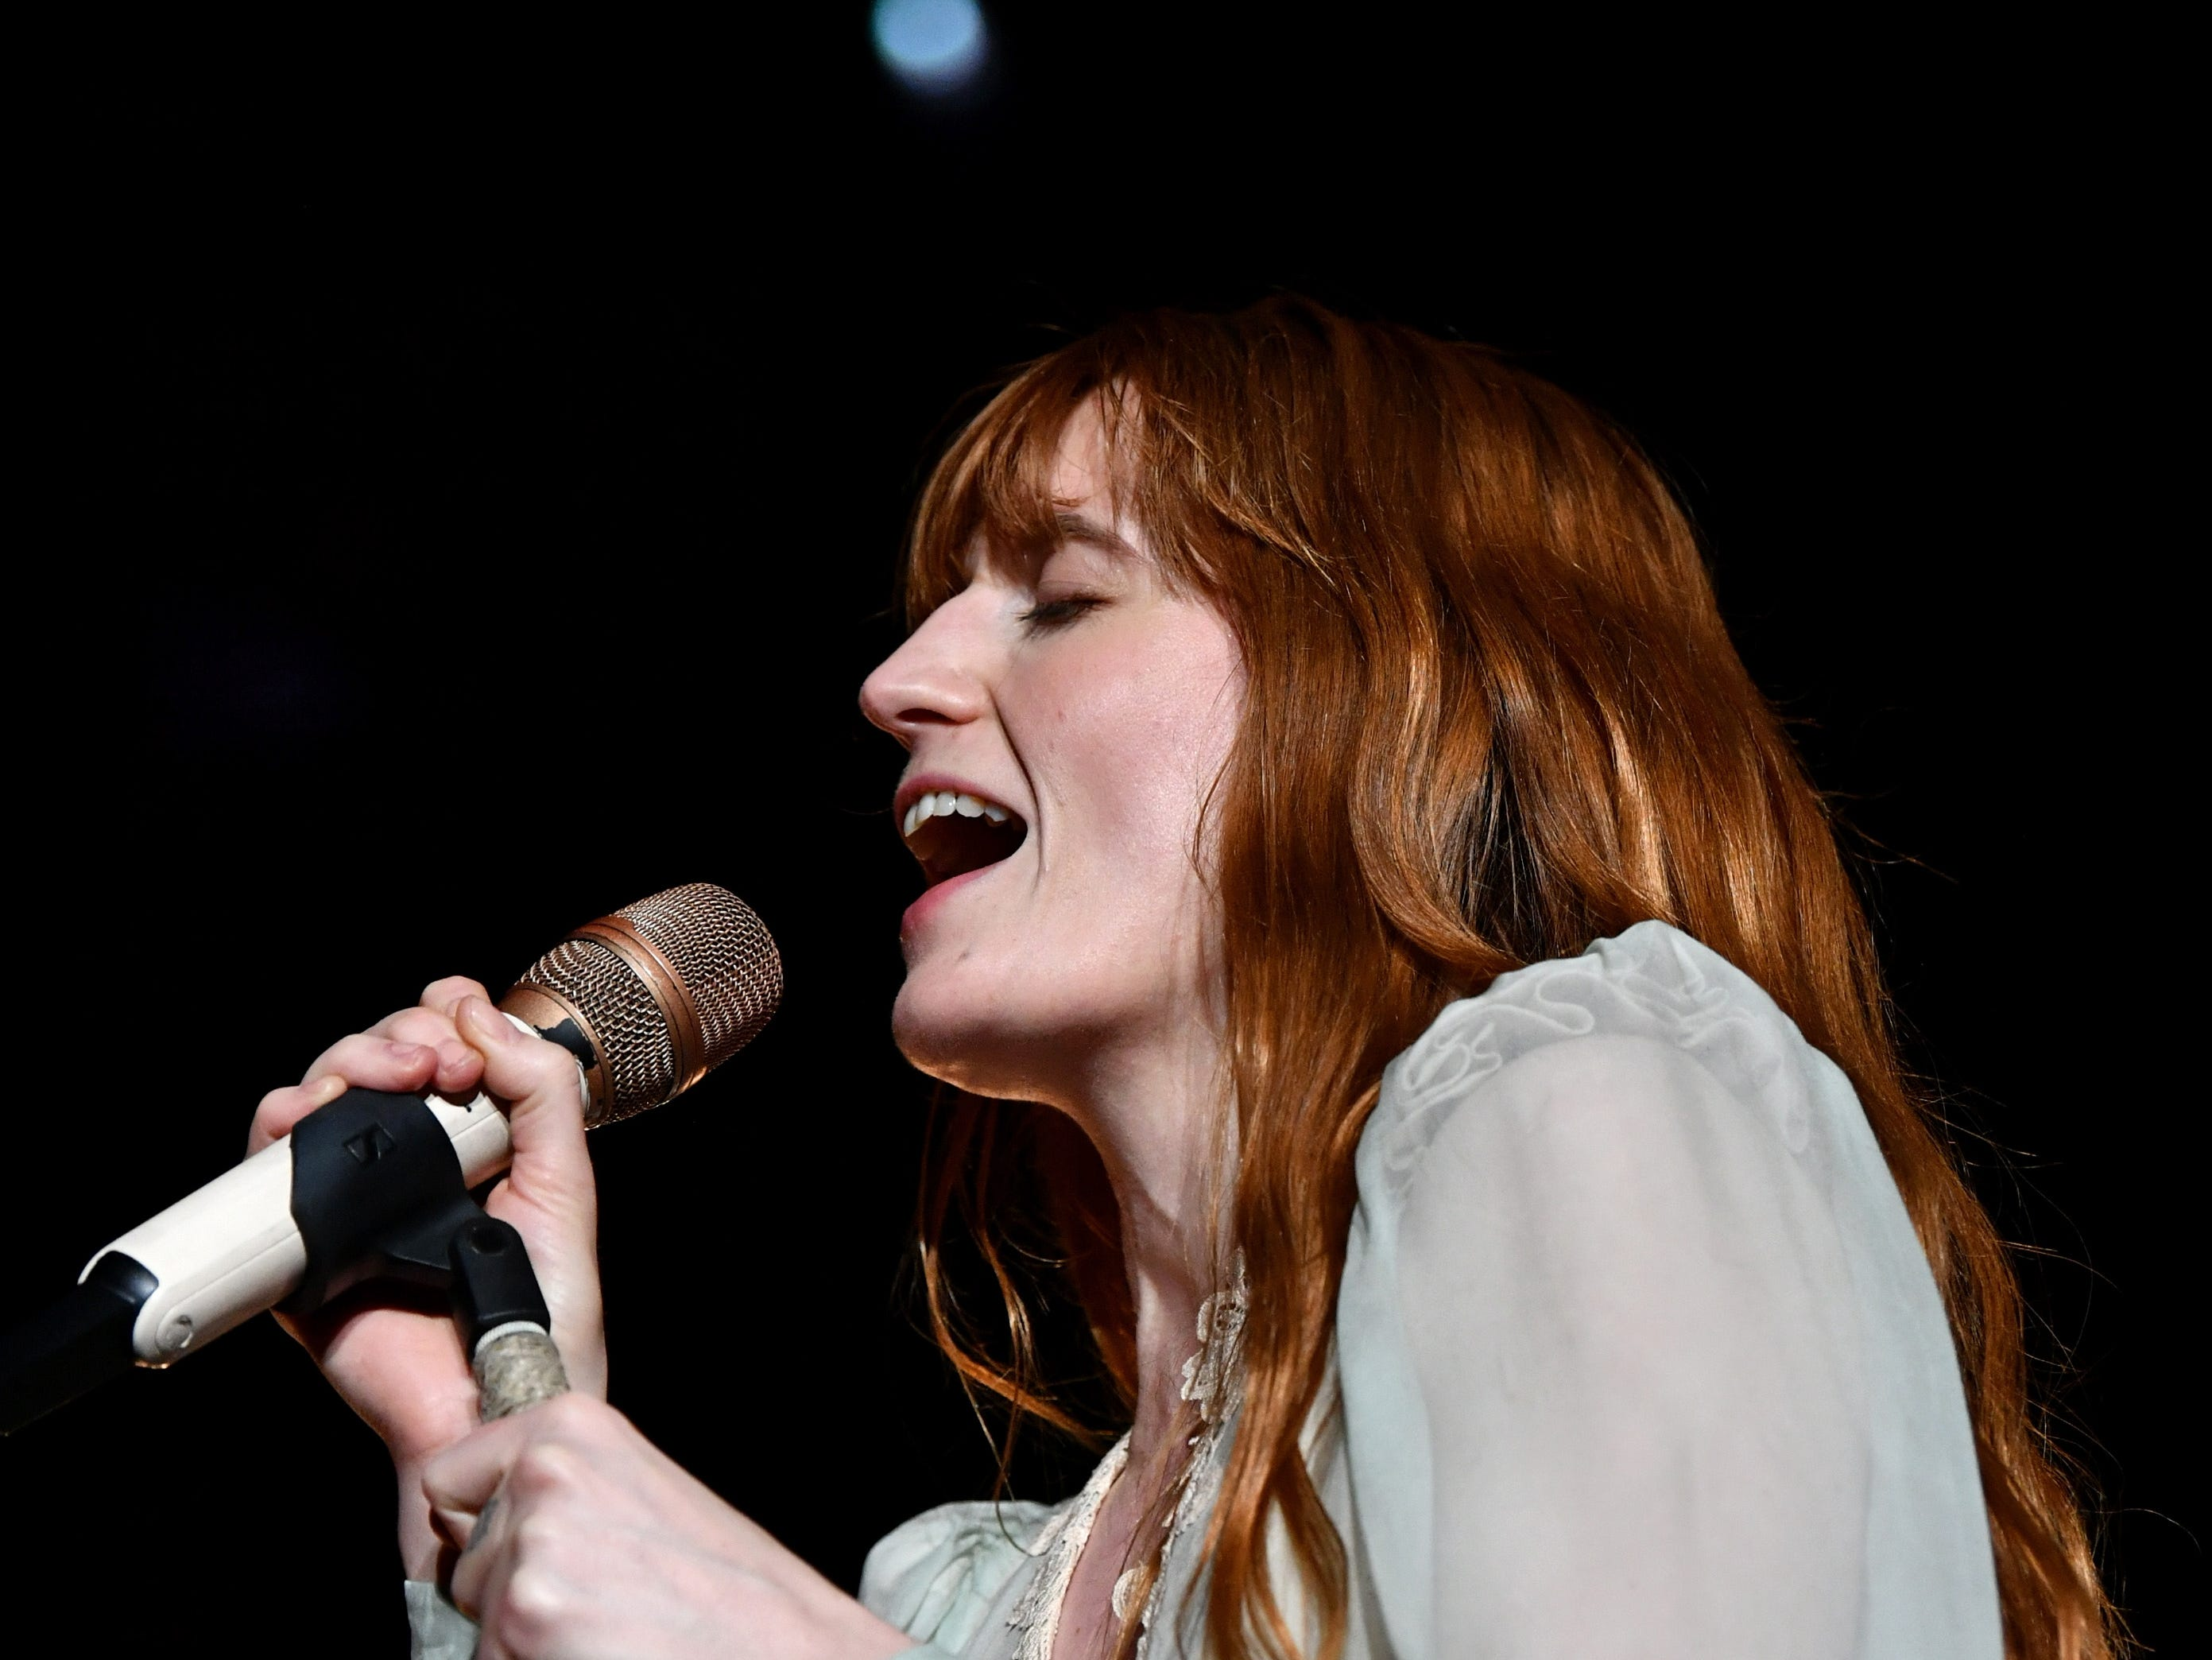 December 9: Florence Welch of Florence and the Machine performs in Inglewood, California.